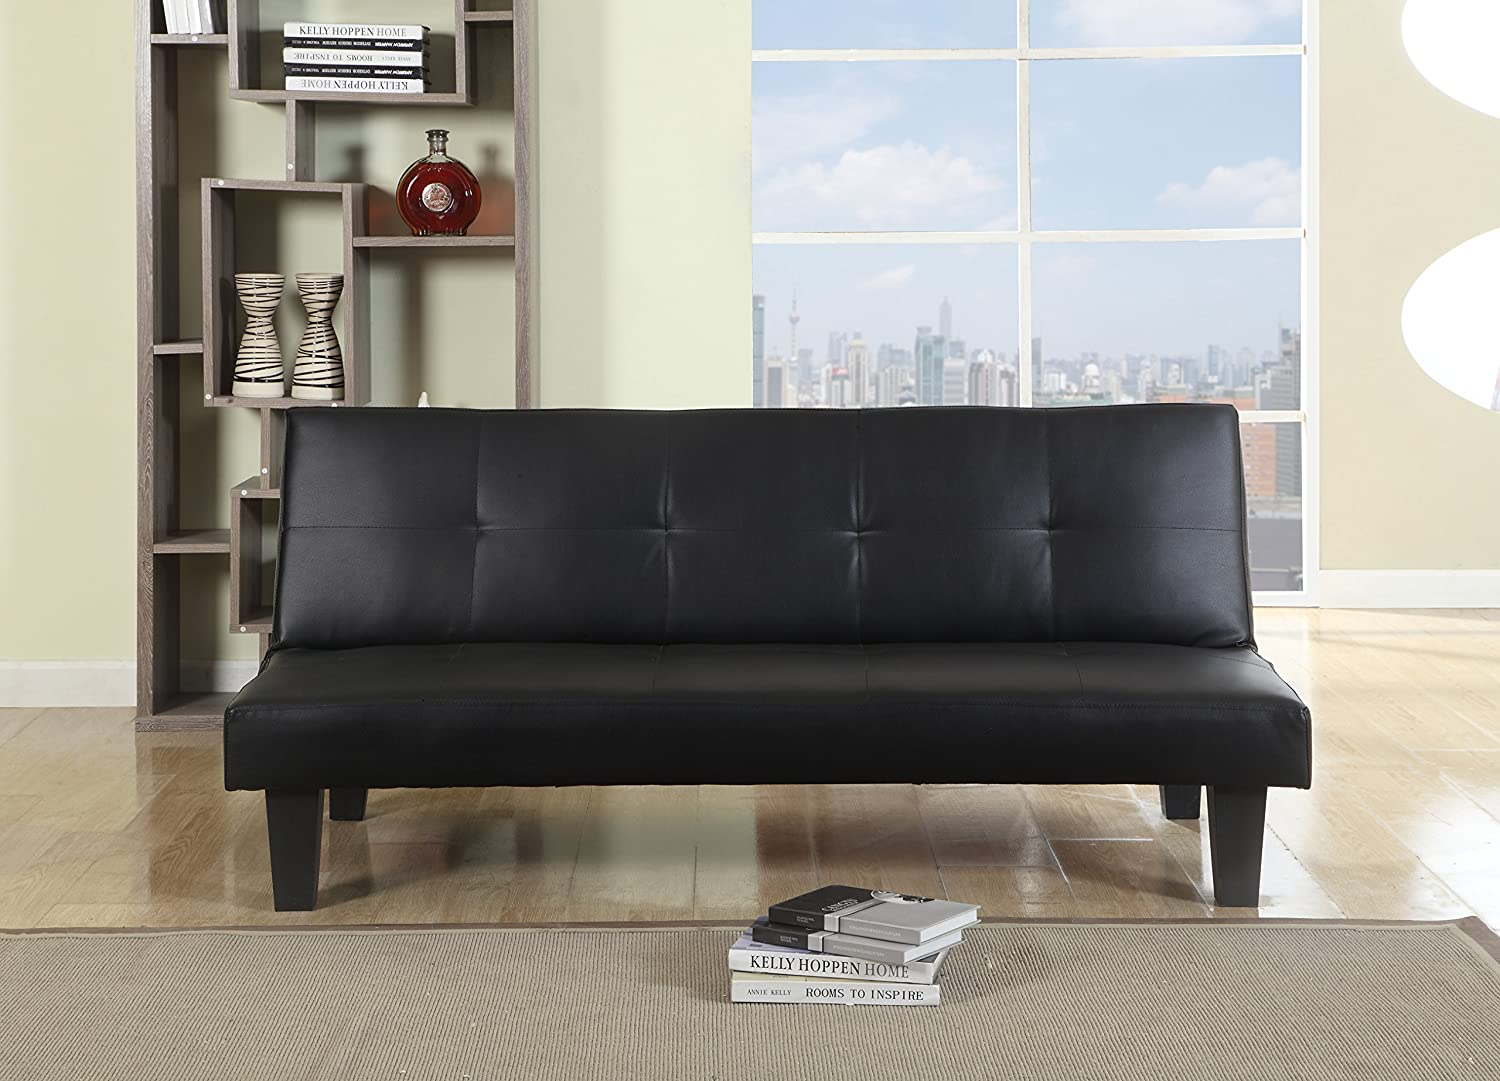 brown leather sofa bed. Birlea Franklin Sofa Bed - Faux Leather, Black: Amazon.co.uk: Kitchen \u0026 Home Brown Leather